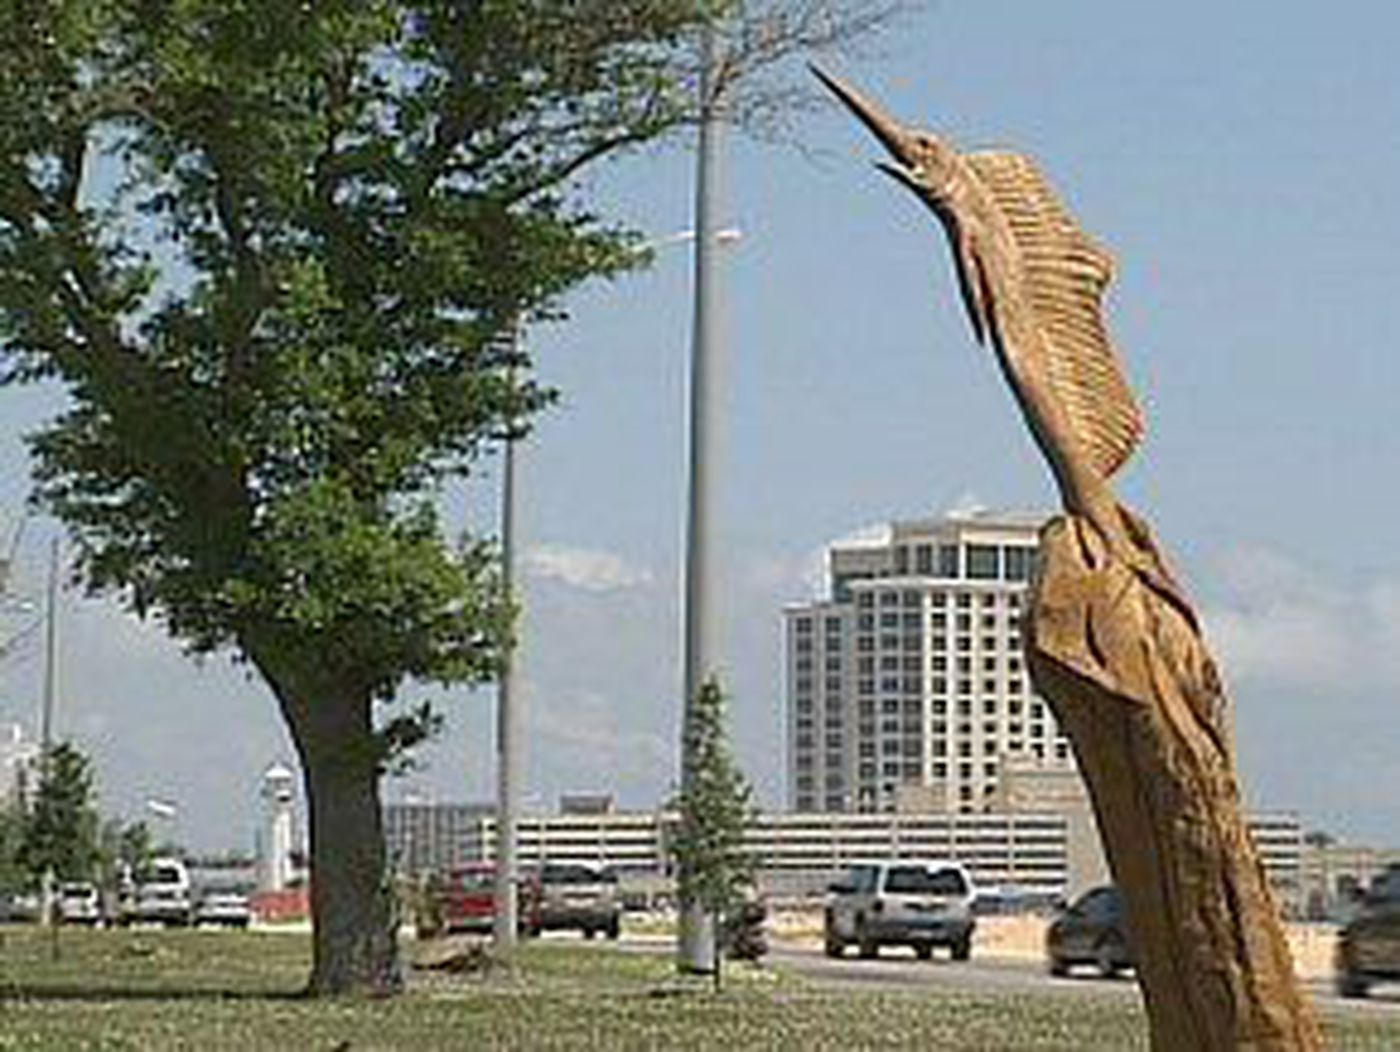 Wood carvings attracting attention along highway